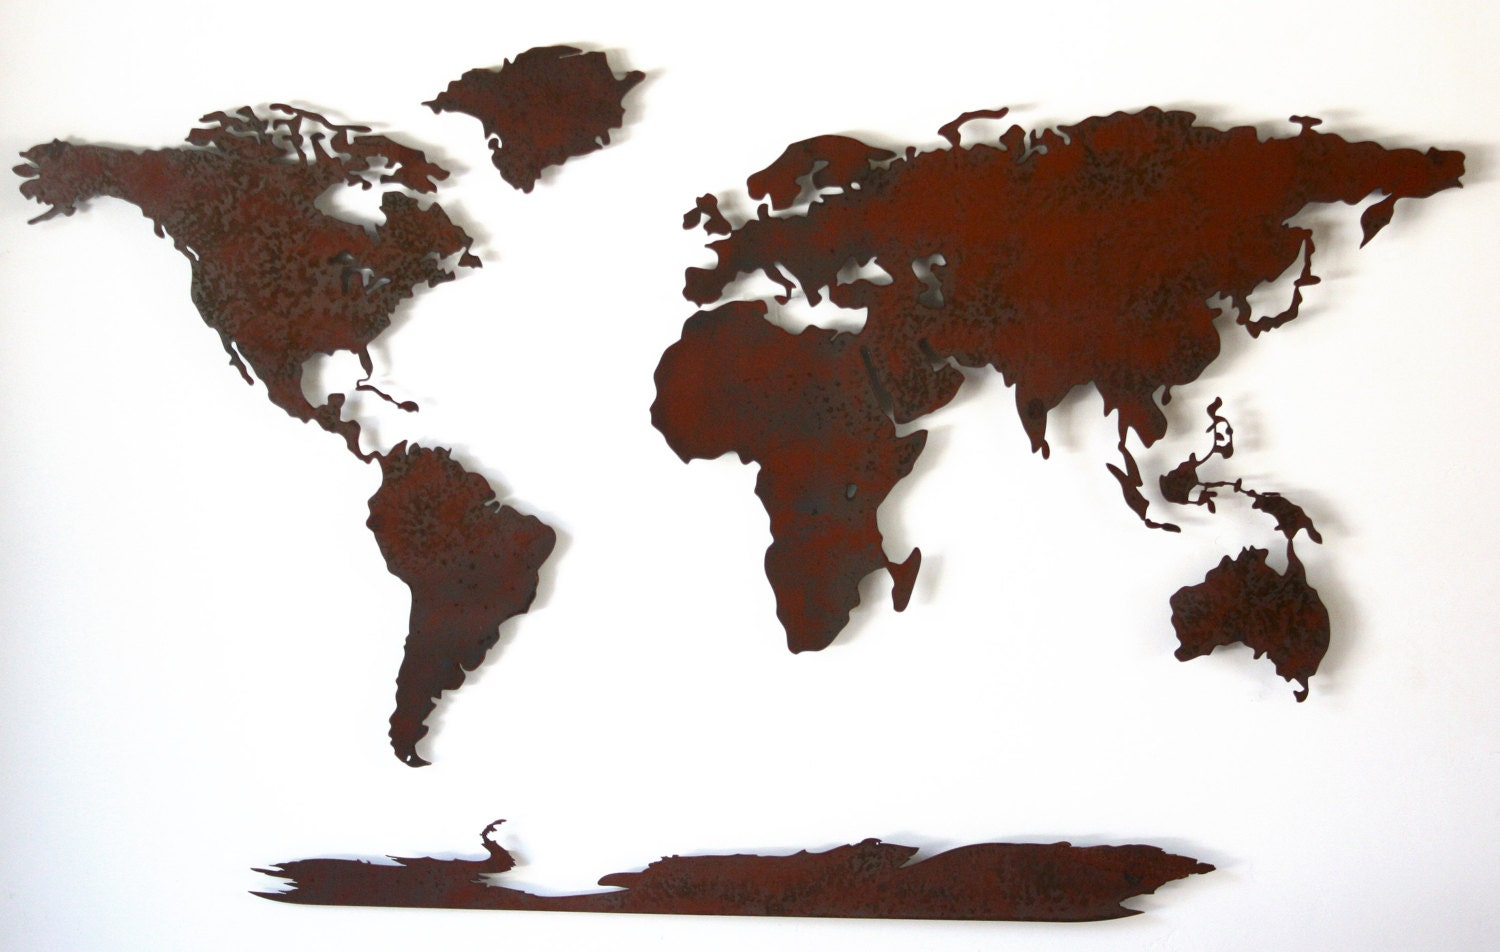 World map metal wall art 50 wide x 30 tall 5 zoom gumiabroncs Gallery